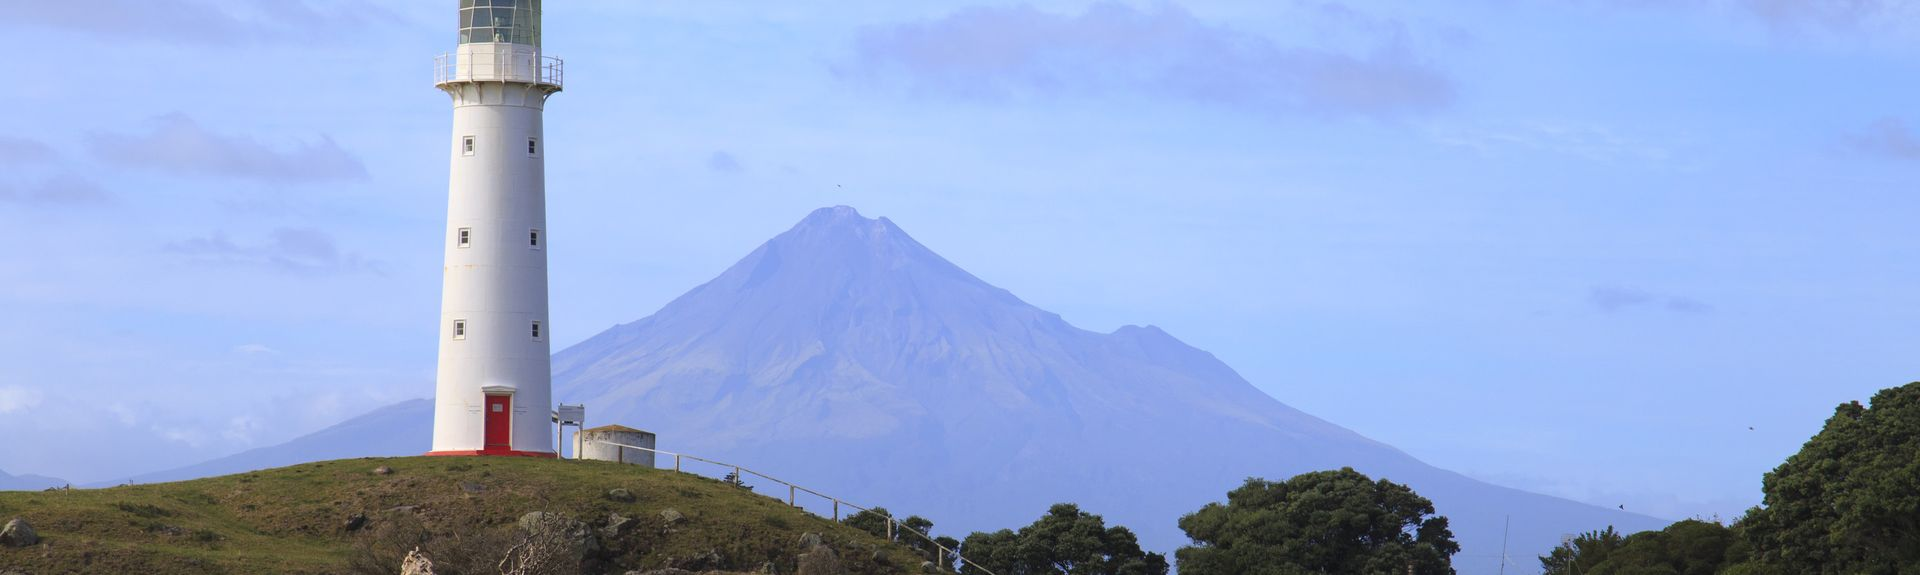 Opunake, South Taranaki, Taranaki, New Zealand